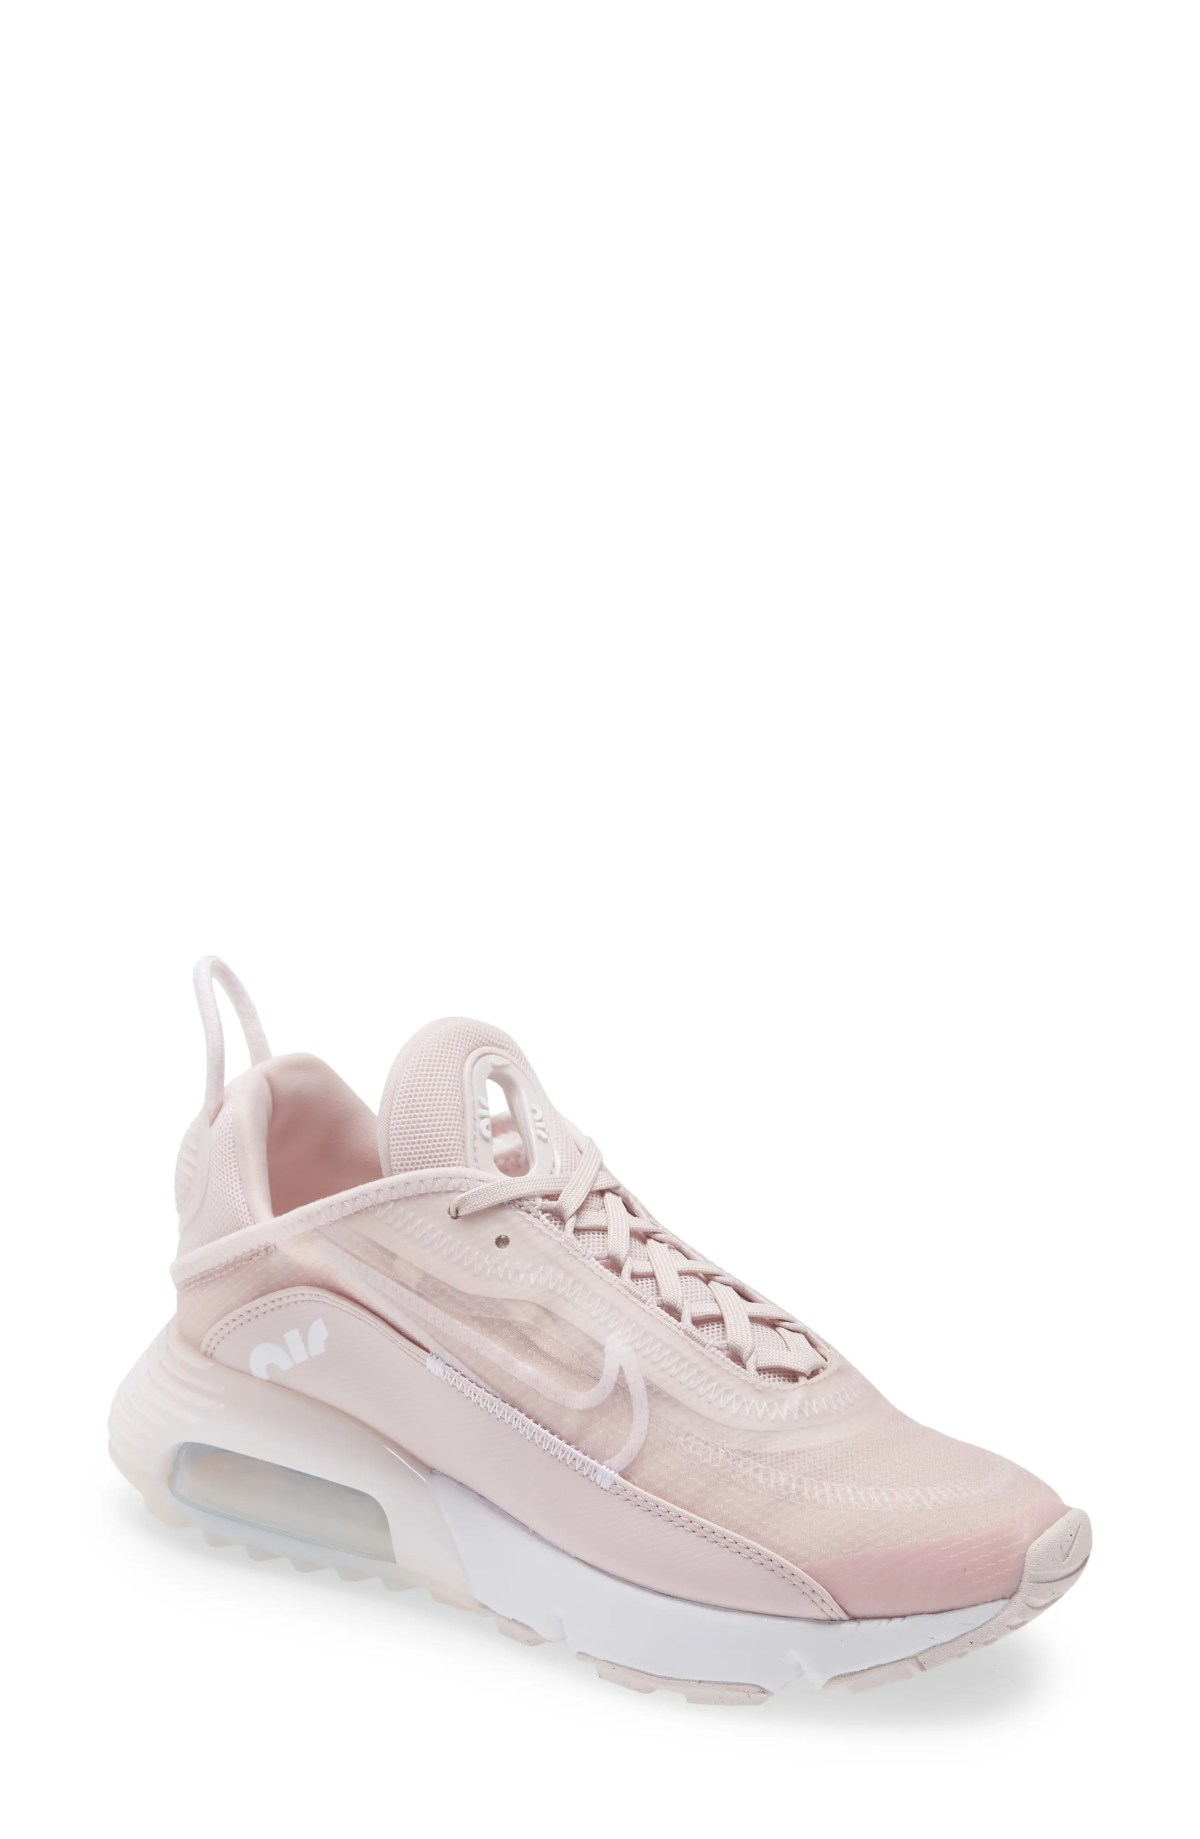 NIKE Air Max 2090 Sneaker, Main, color, BARELY ROSE/ WHITE/ SILVER